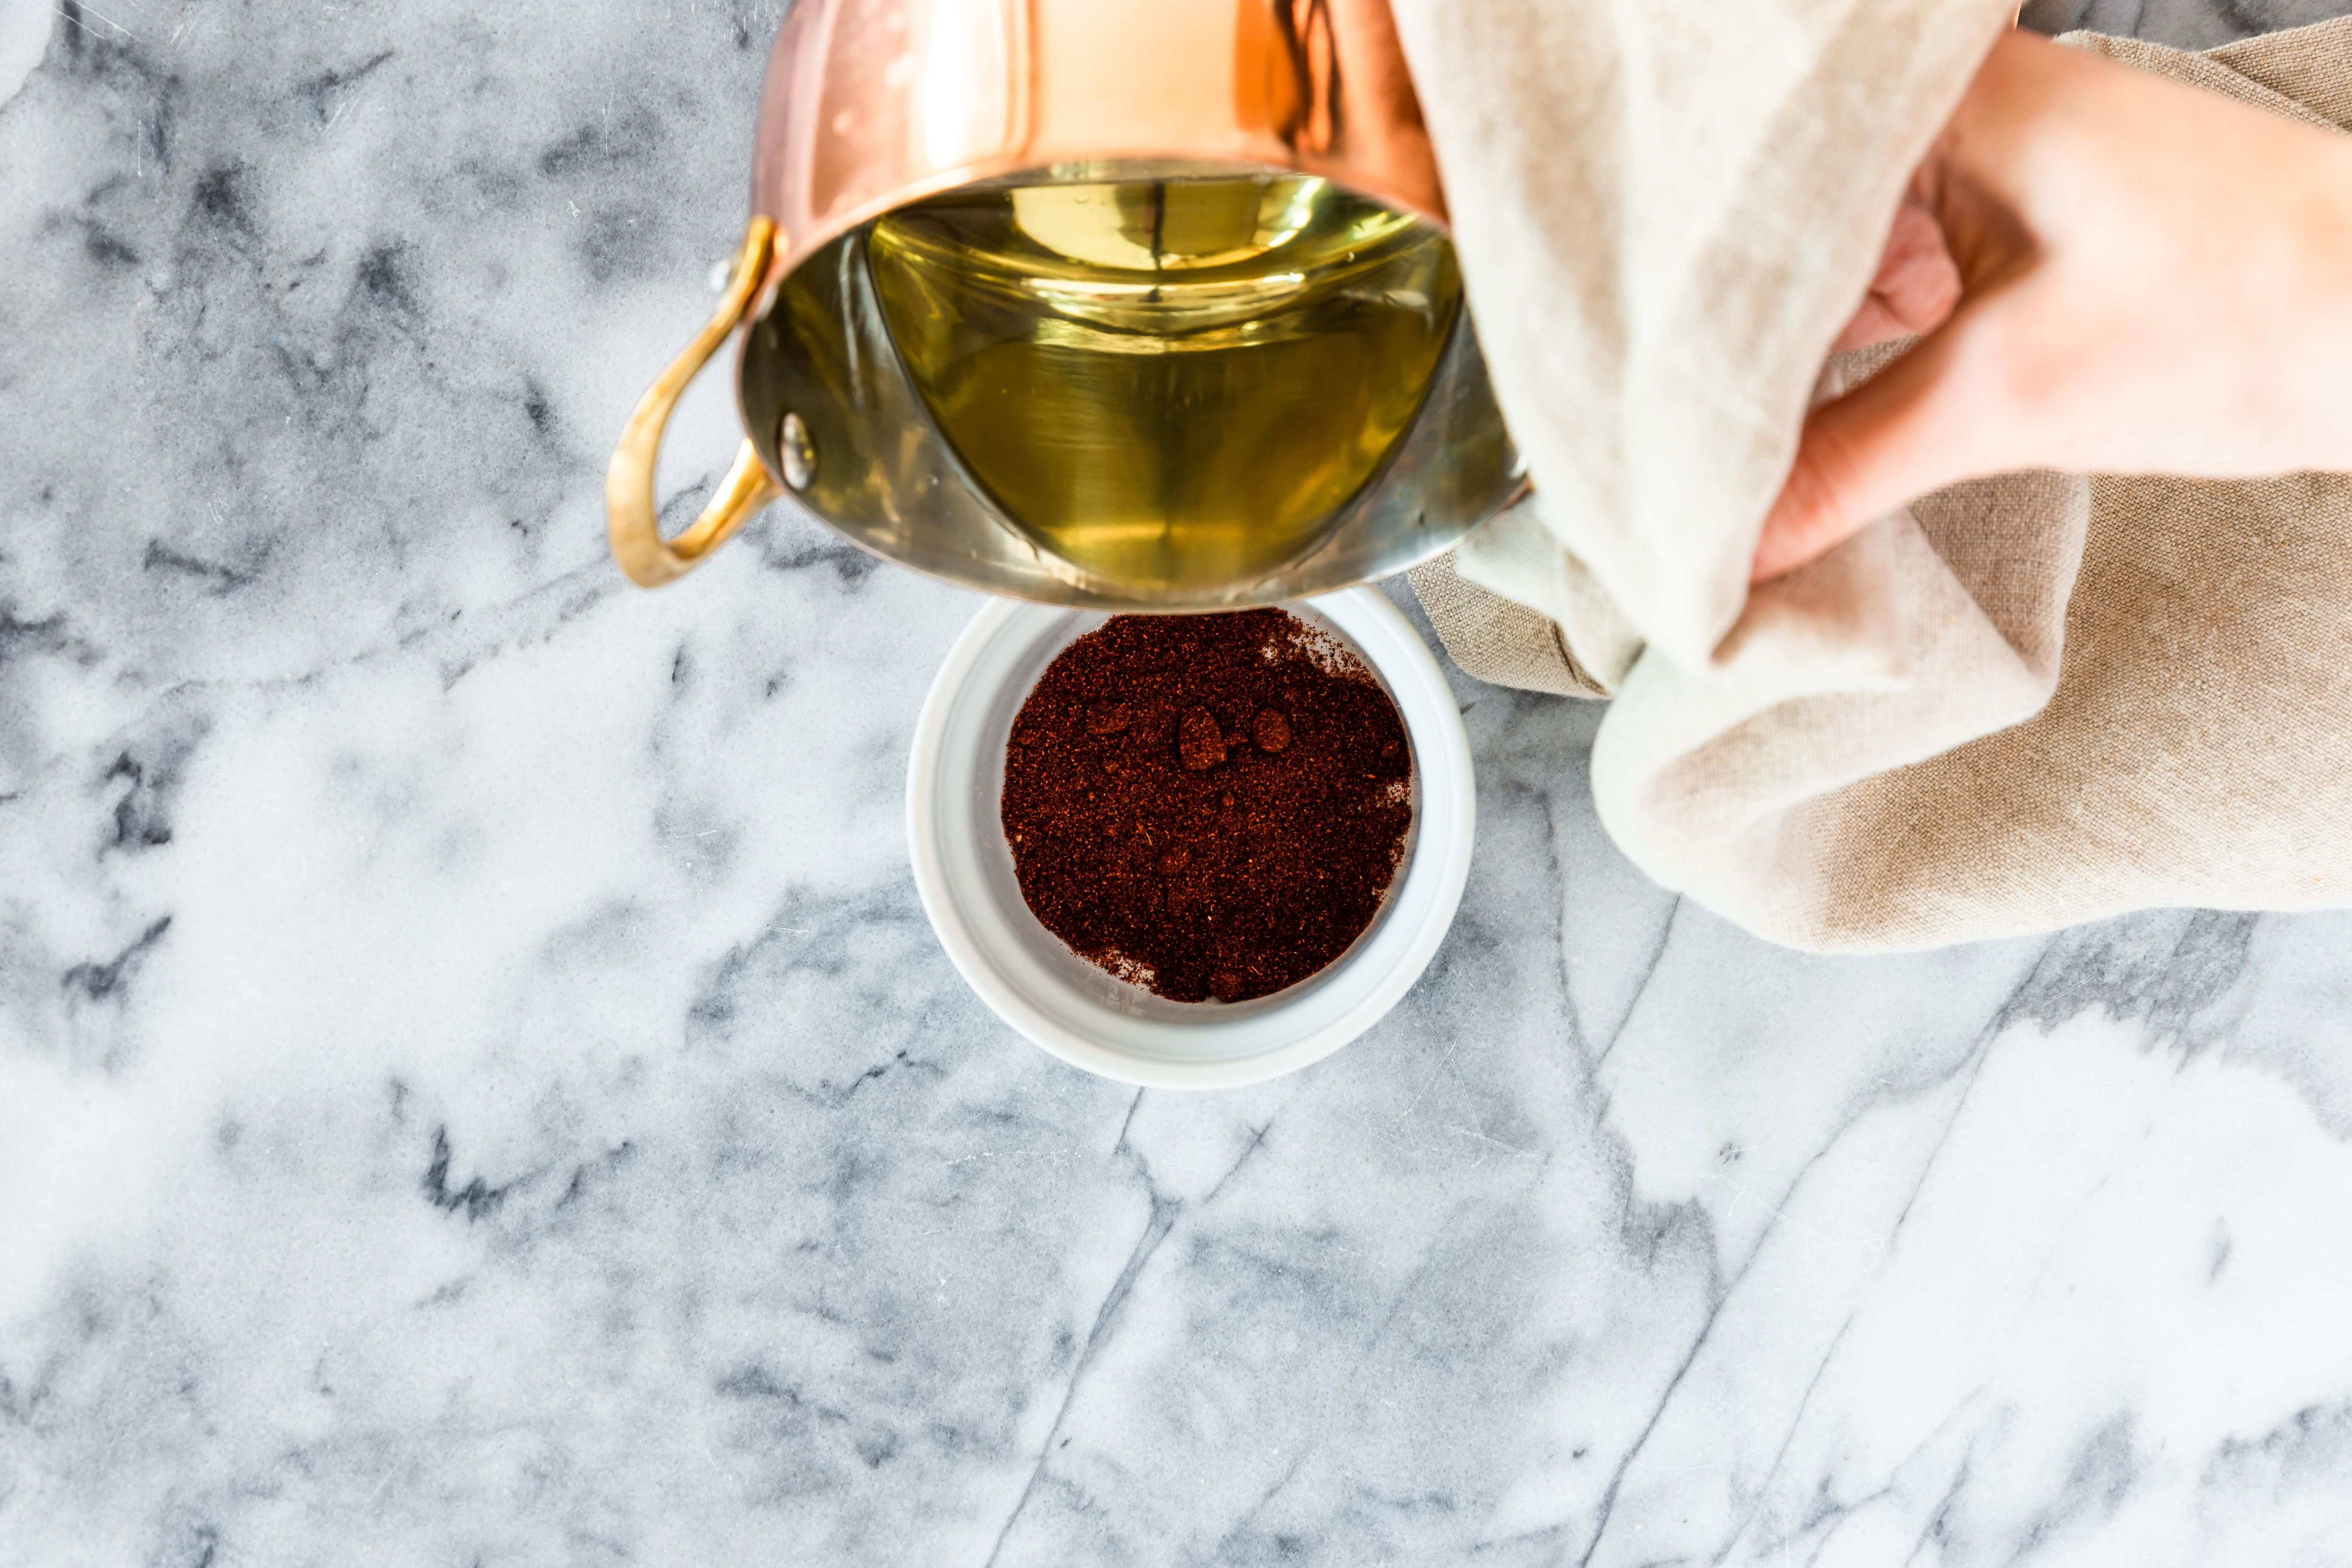 Pouring oil into the cup of chili powder